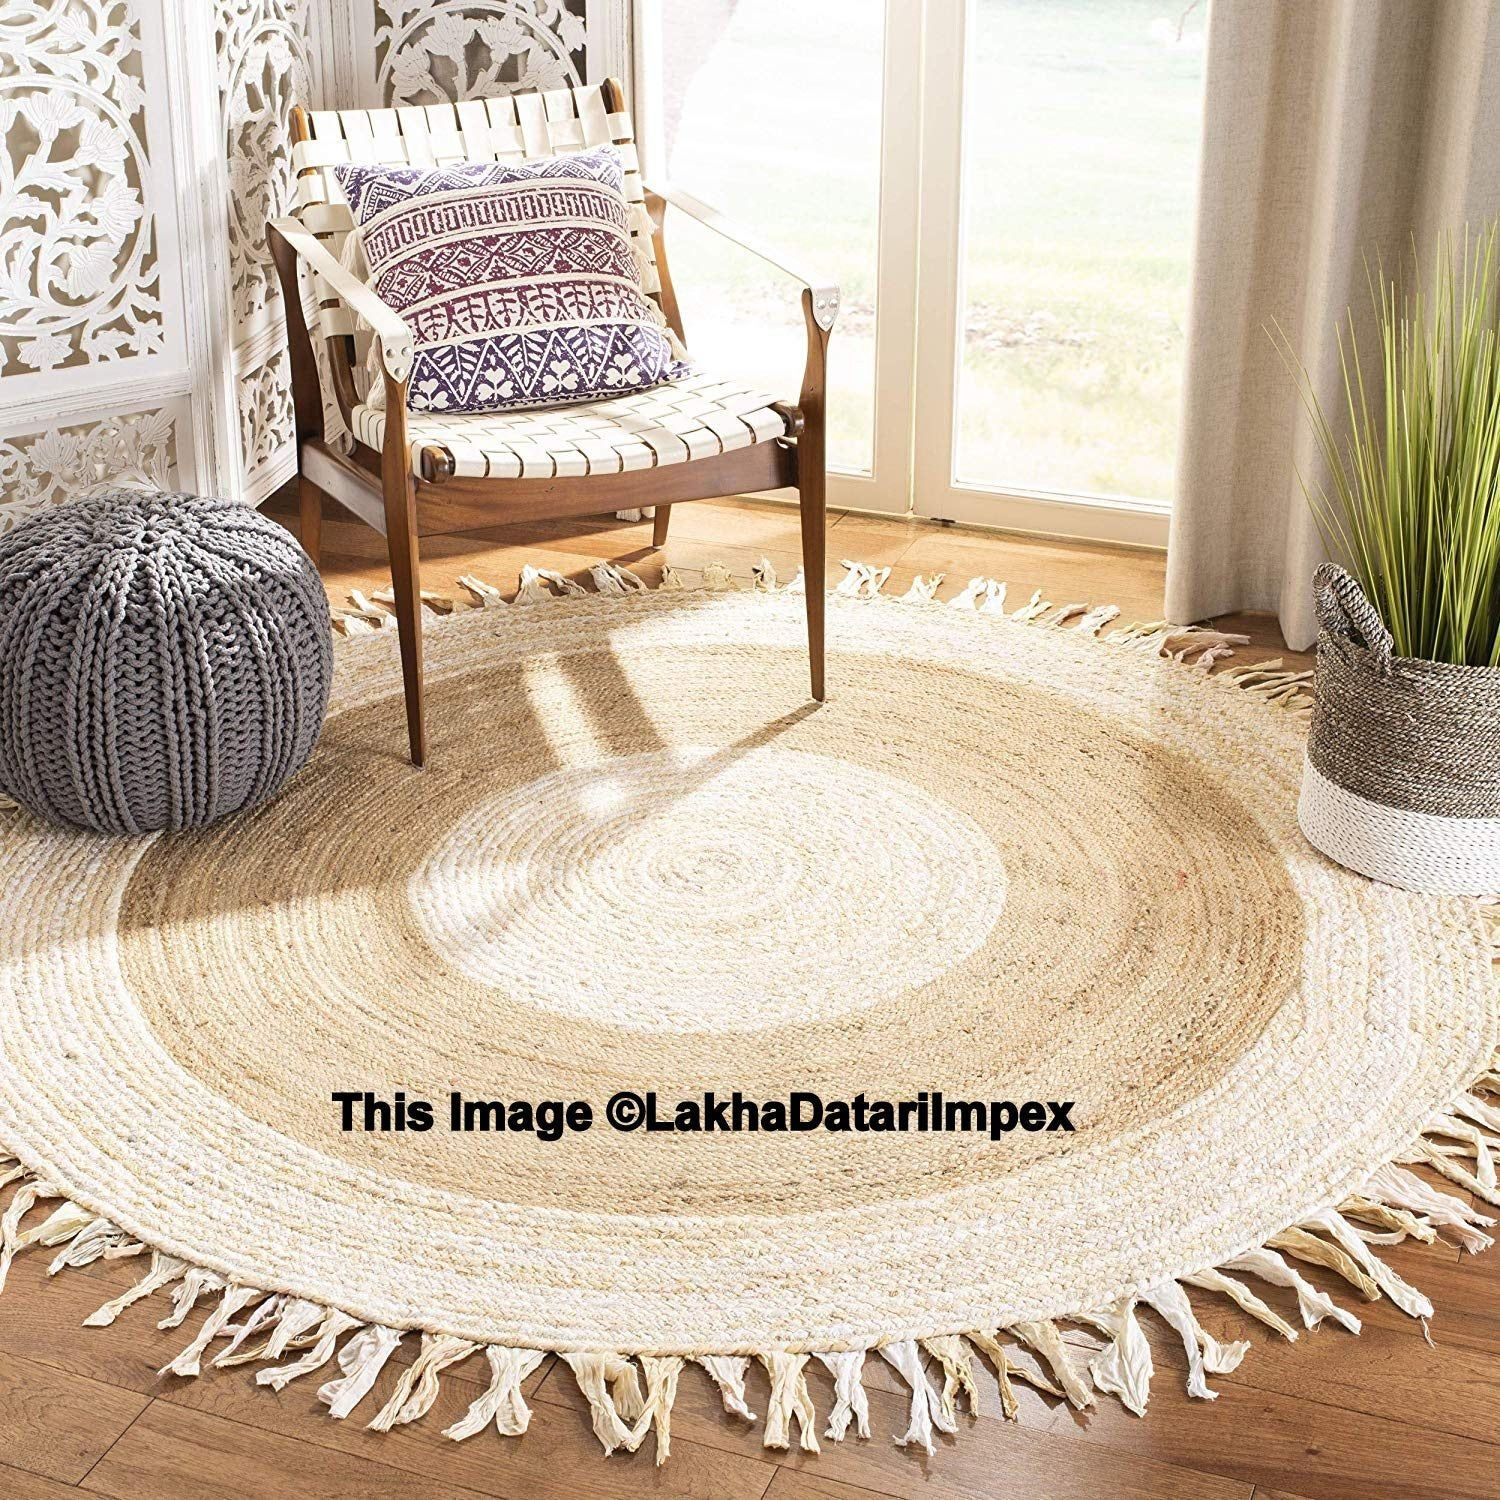 Indian Braided Rag Rug Round Handmade Jute Rug Natural Jute Round Rug Floor Rug Indian Handwoven Ribbed Solid Area Jute Round Rug Braided Area Rugs Floor Rugs